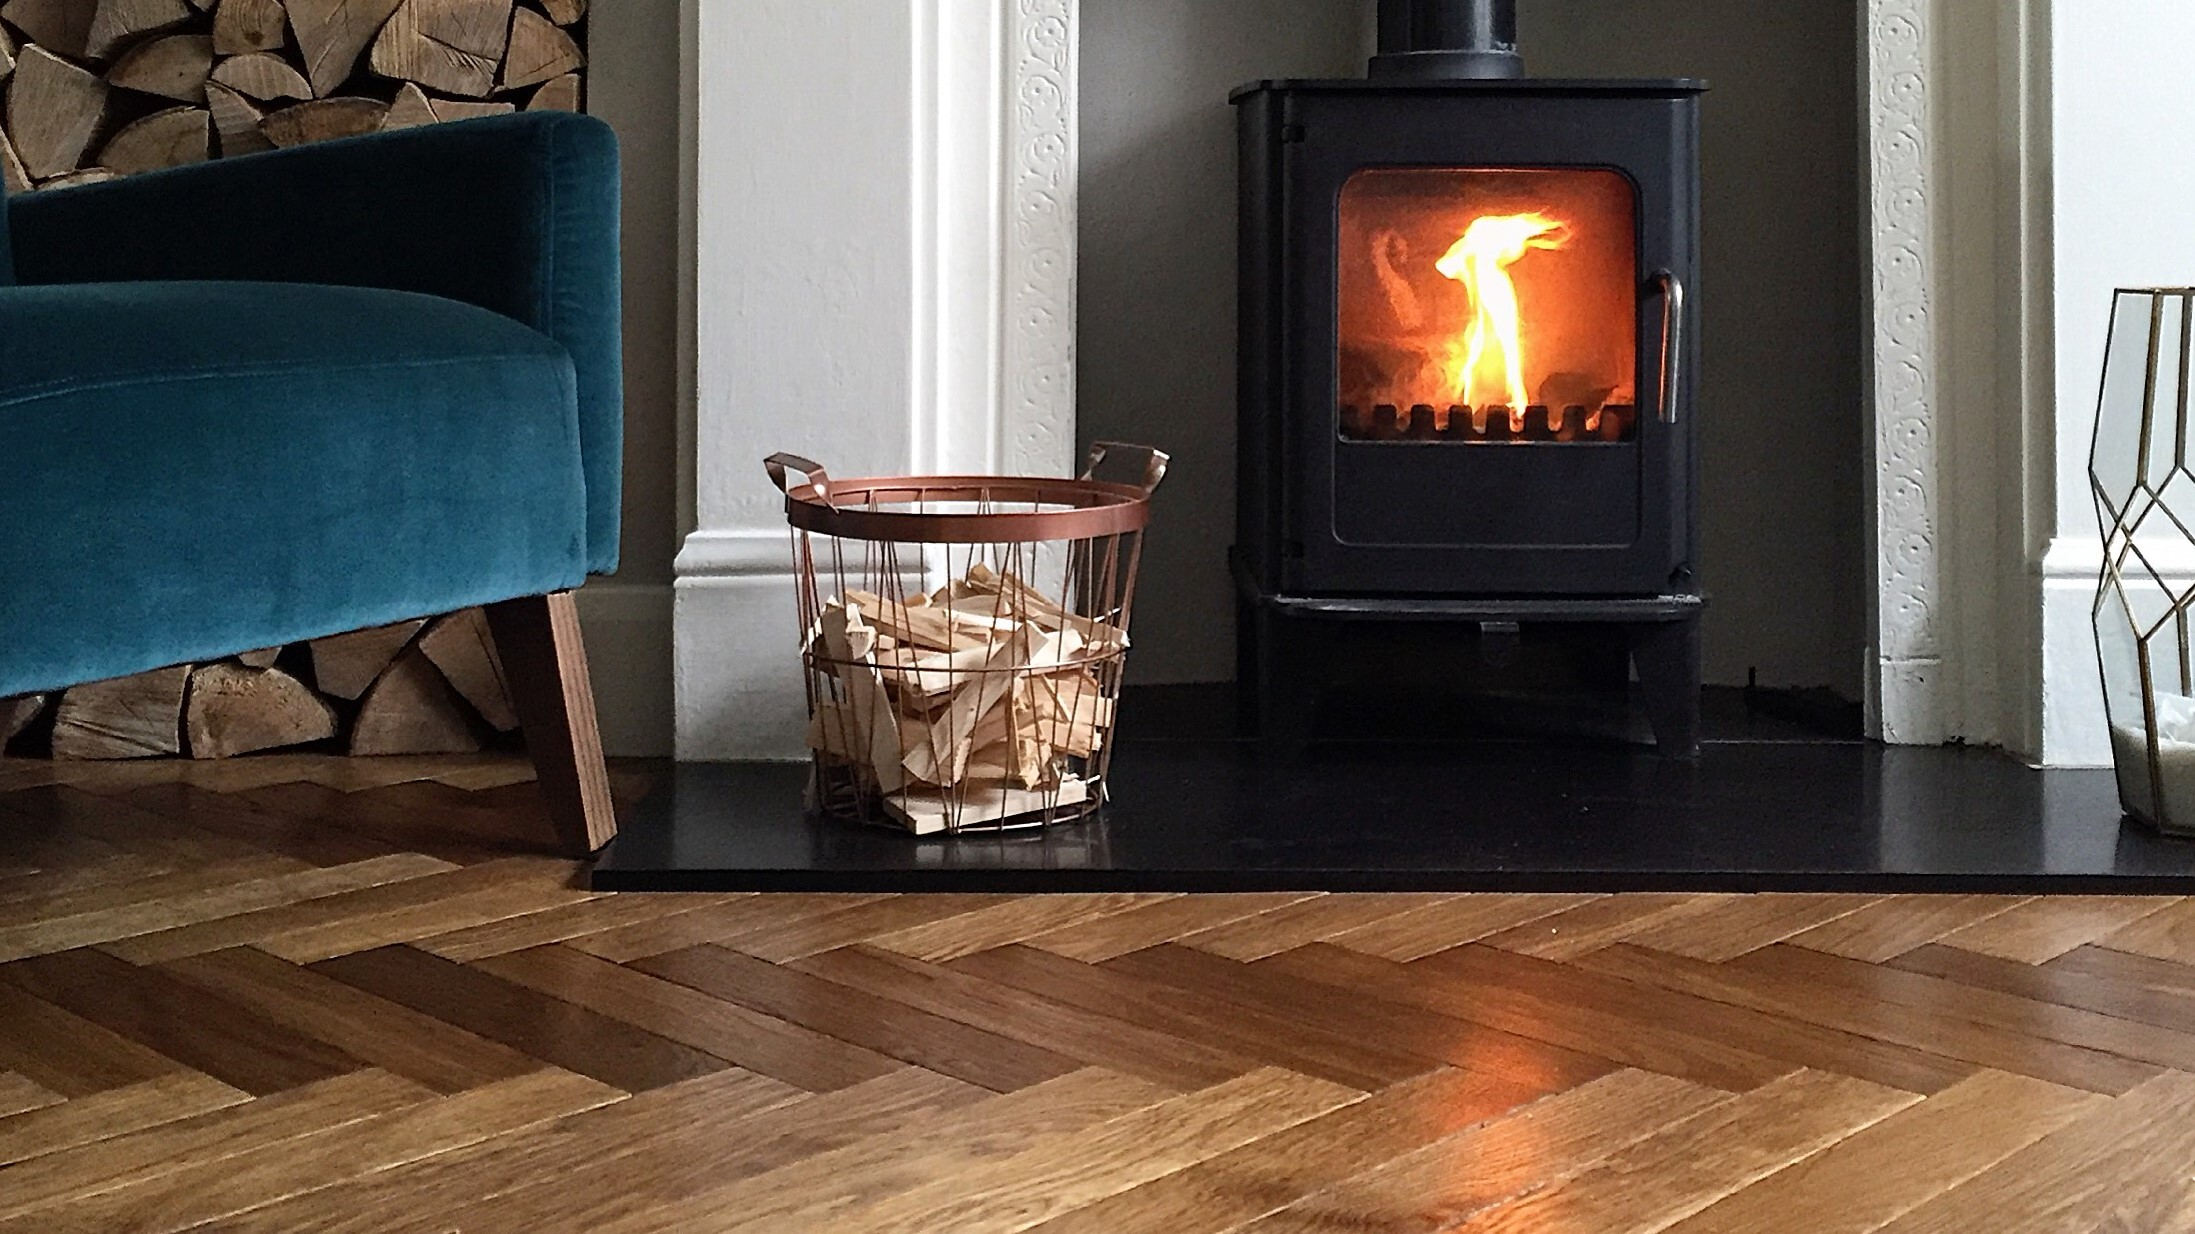 Landmark Dalton herringbone floor with blue velvet chair and wood burner